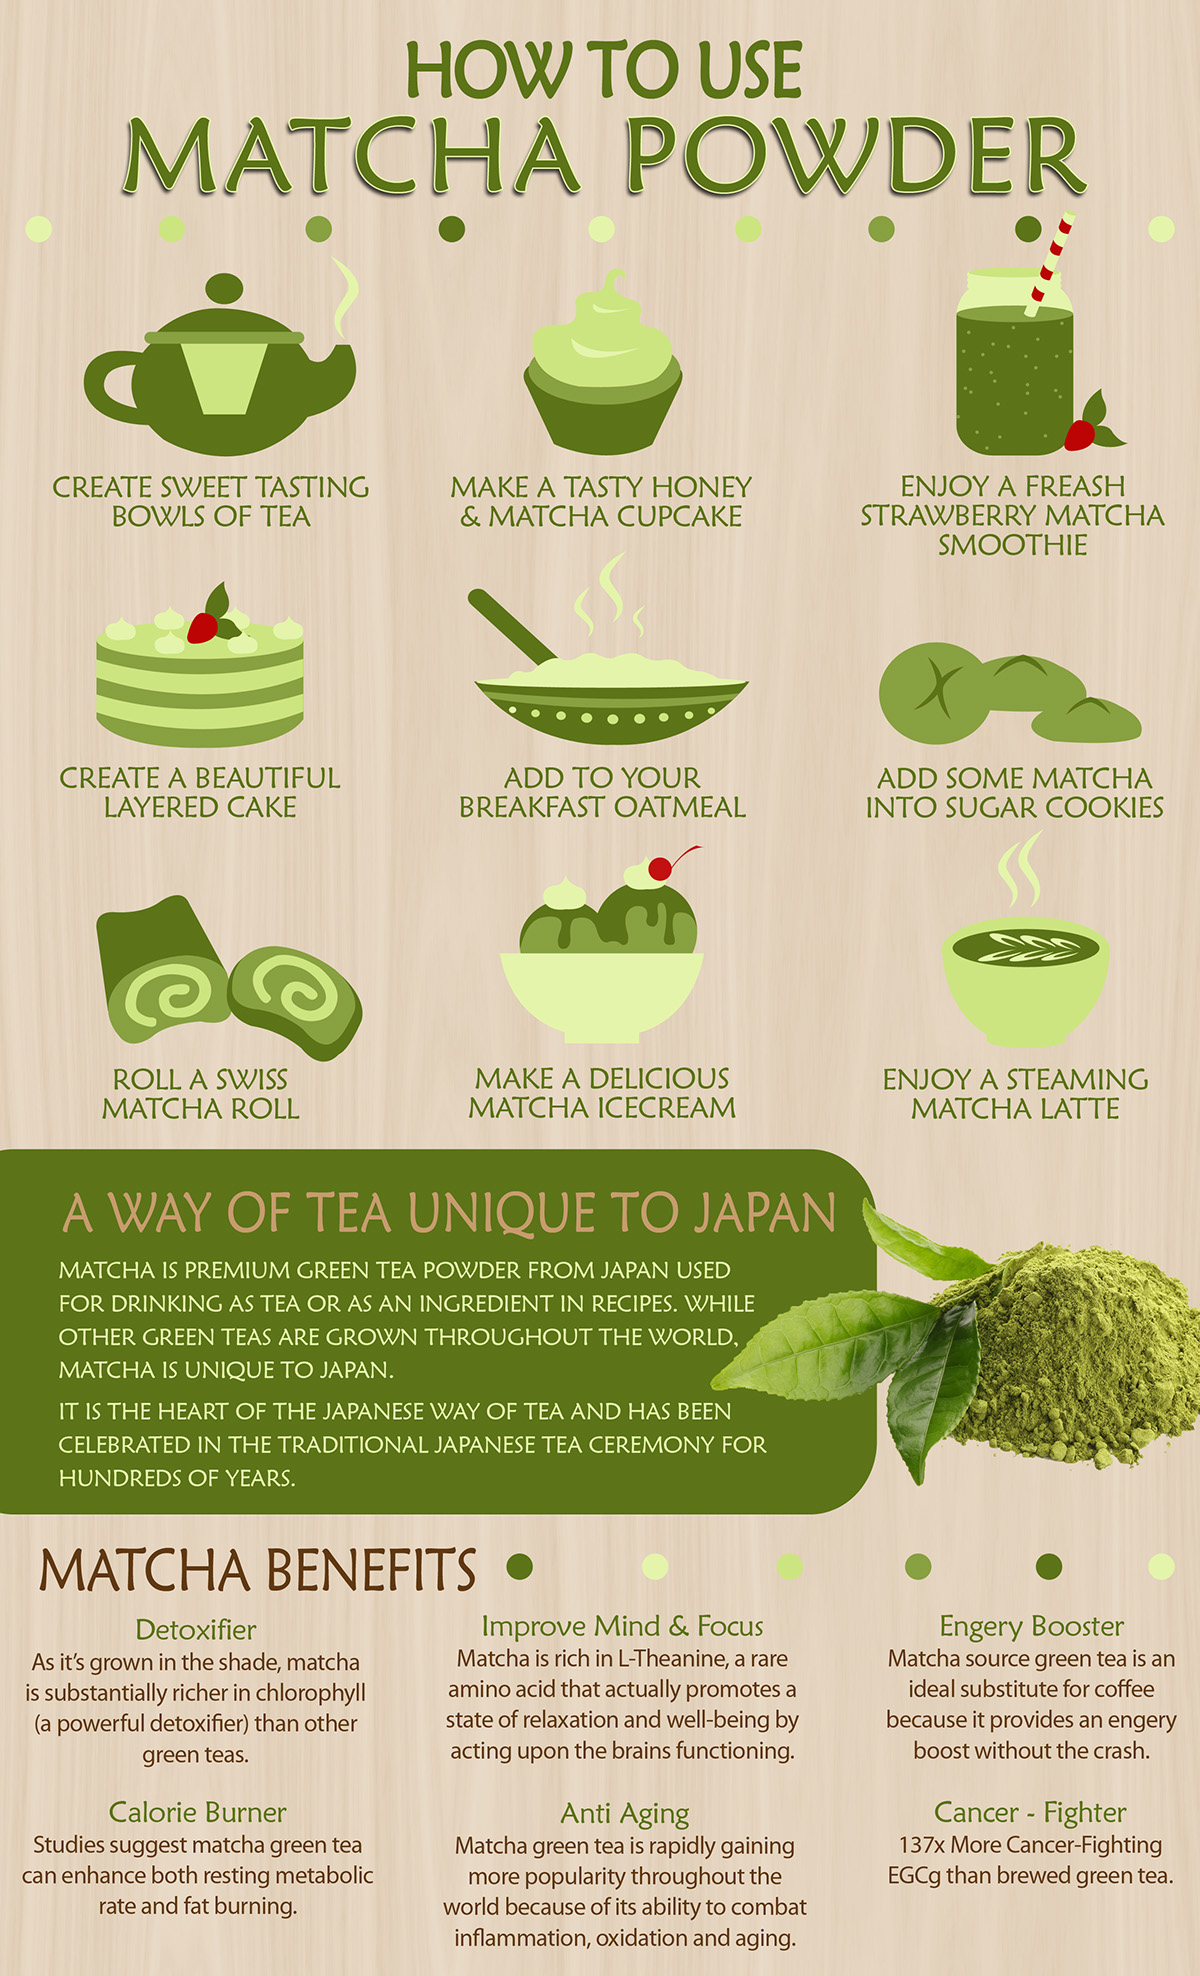 matcha powder uses on behance